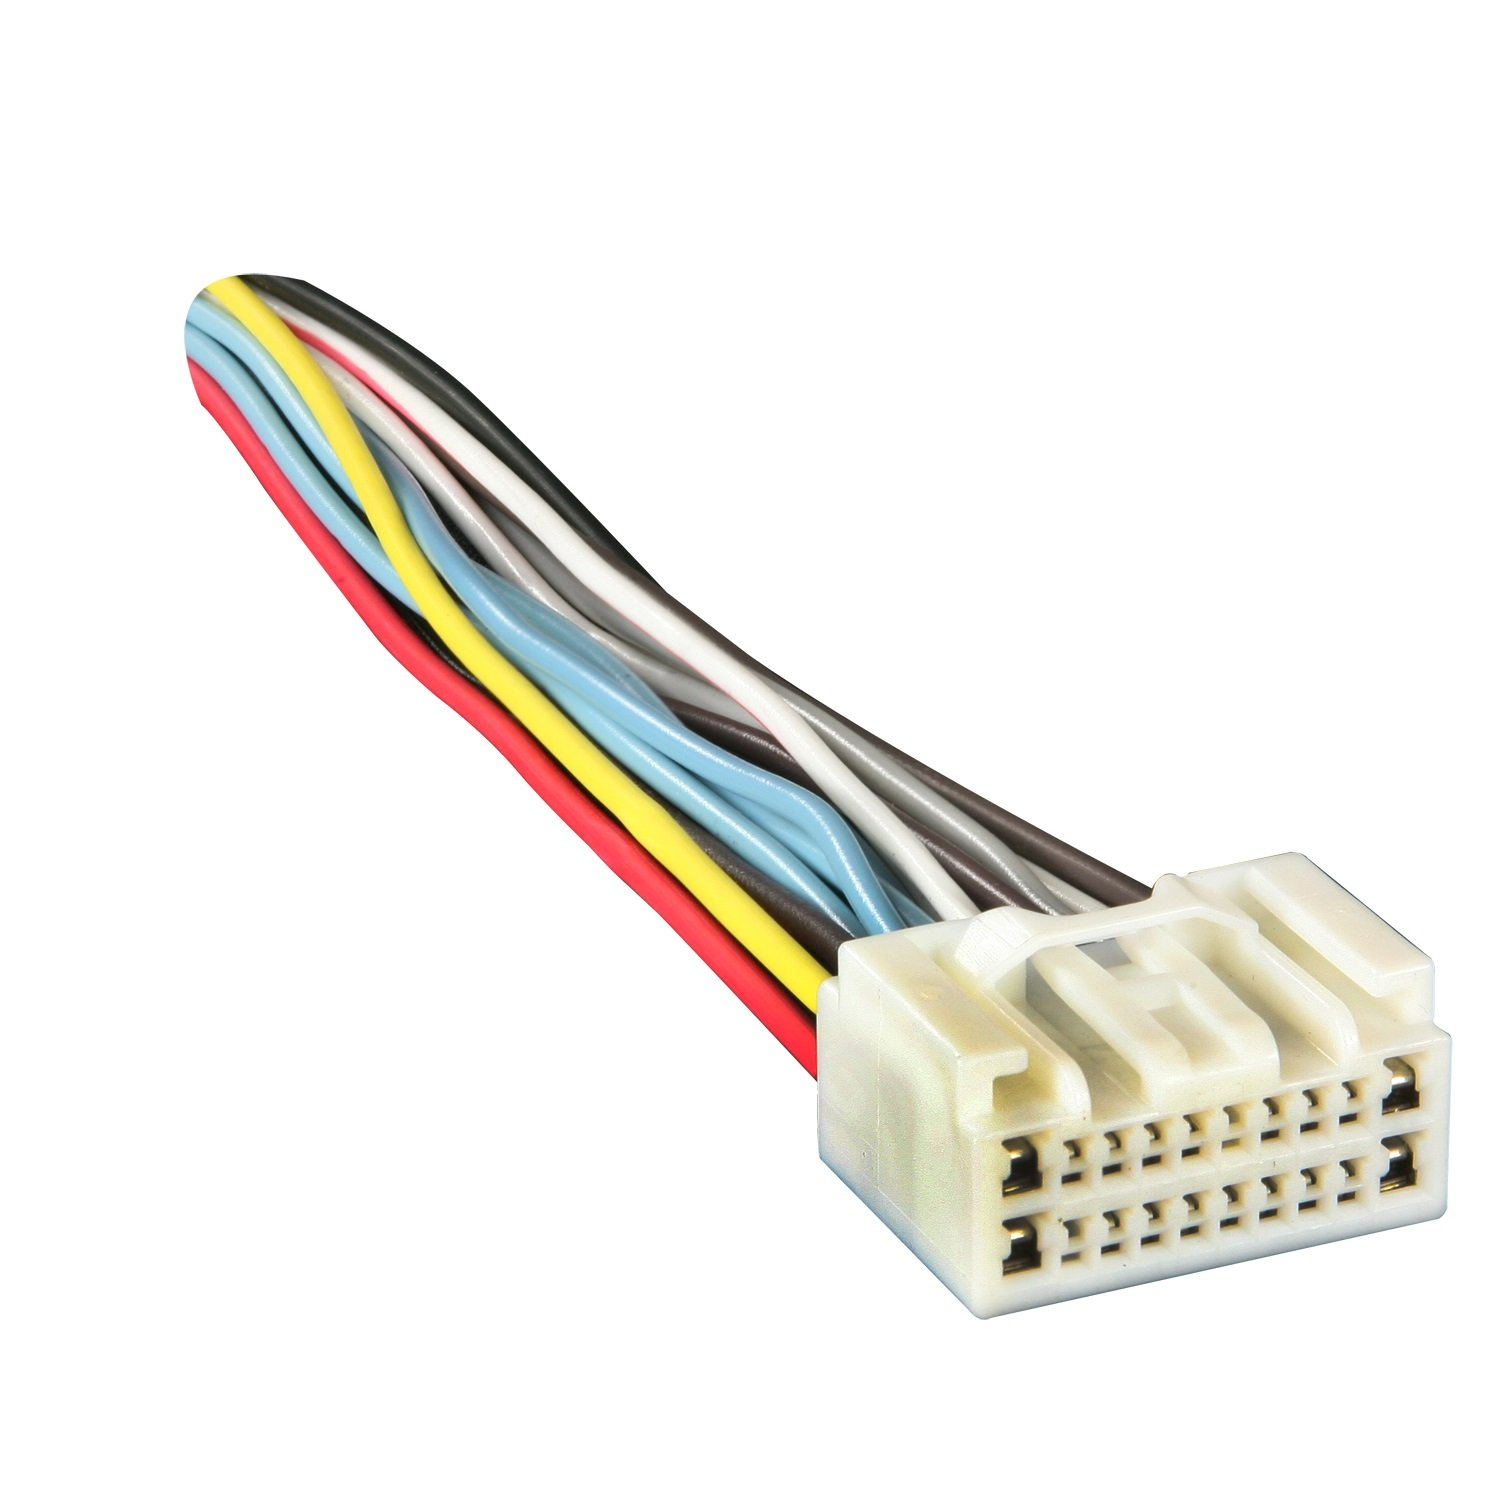 61k6eVpKLJL._SL1500_ amazon com metra 71 8113 reverse wiring harness for select 2000 best buy wiring harness at letsshop.co